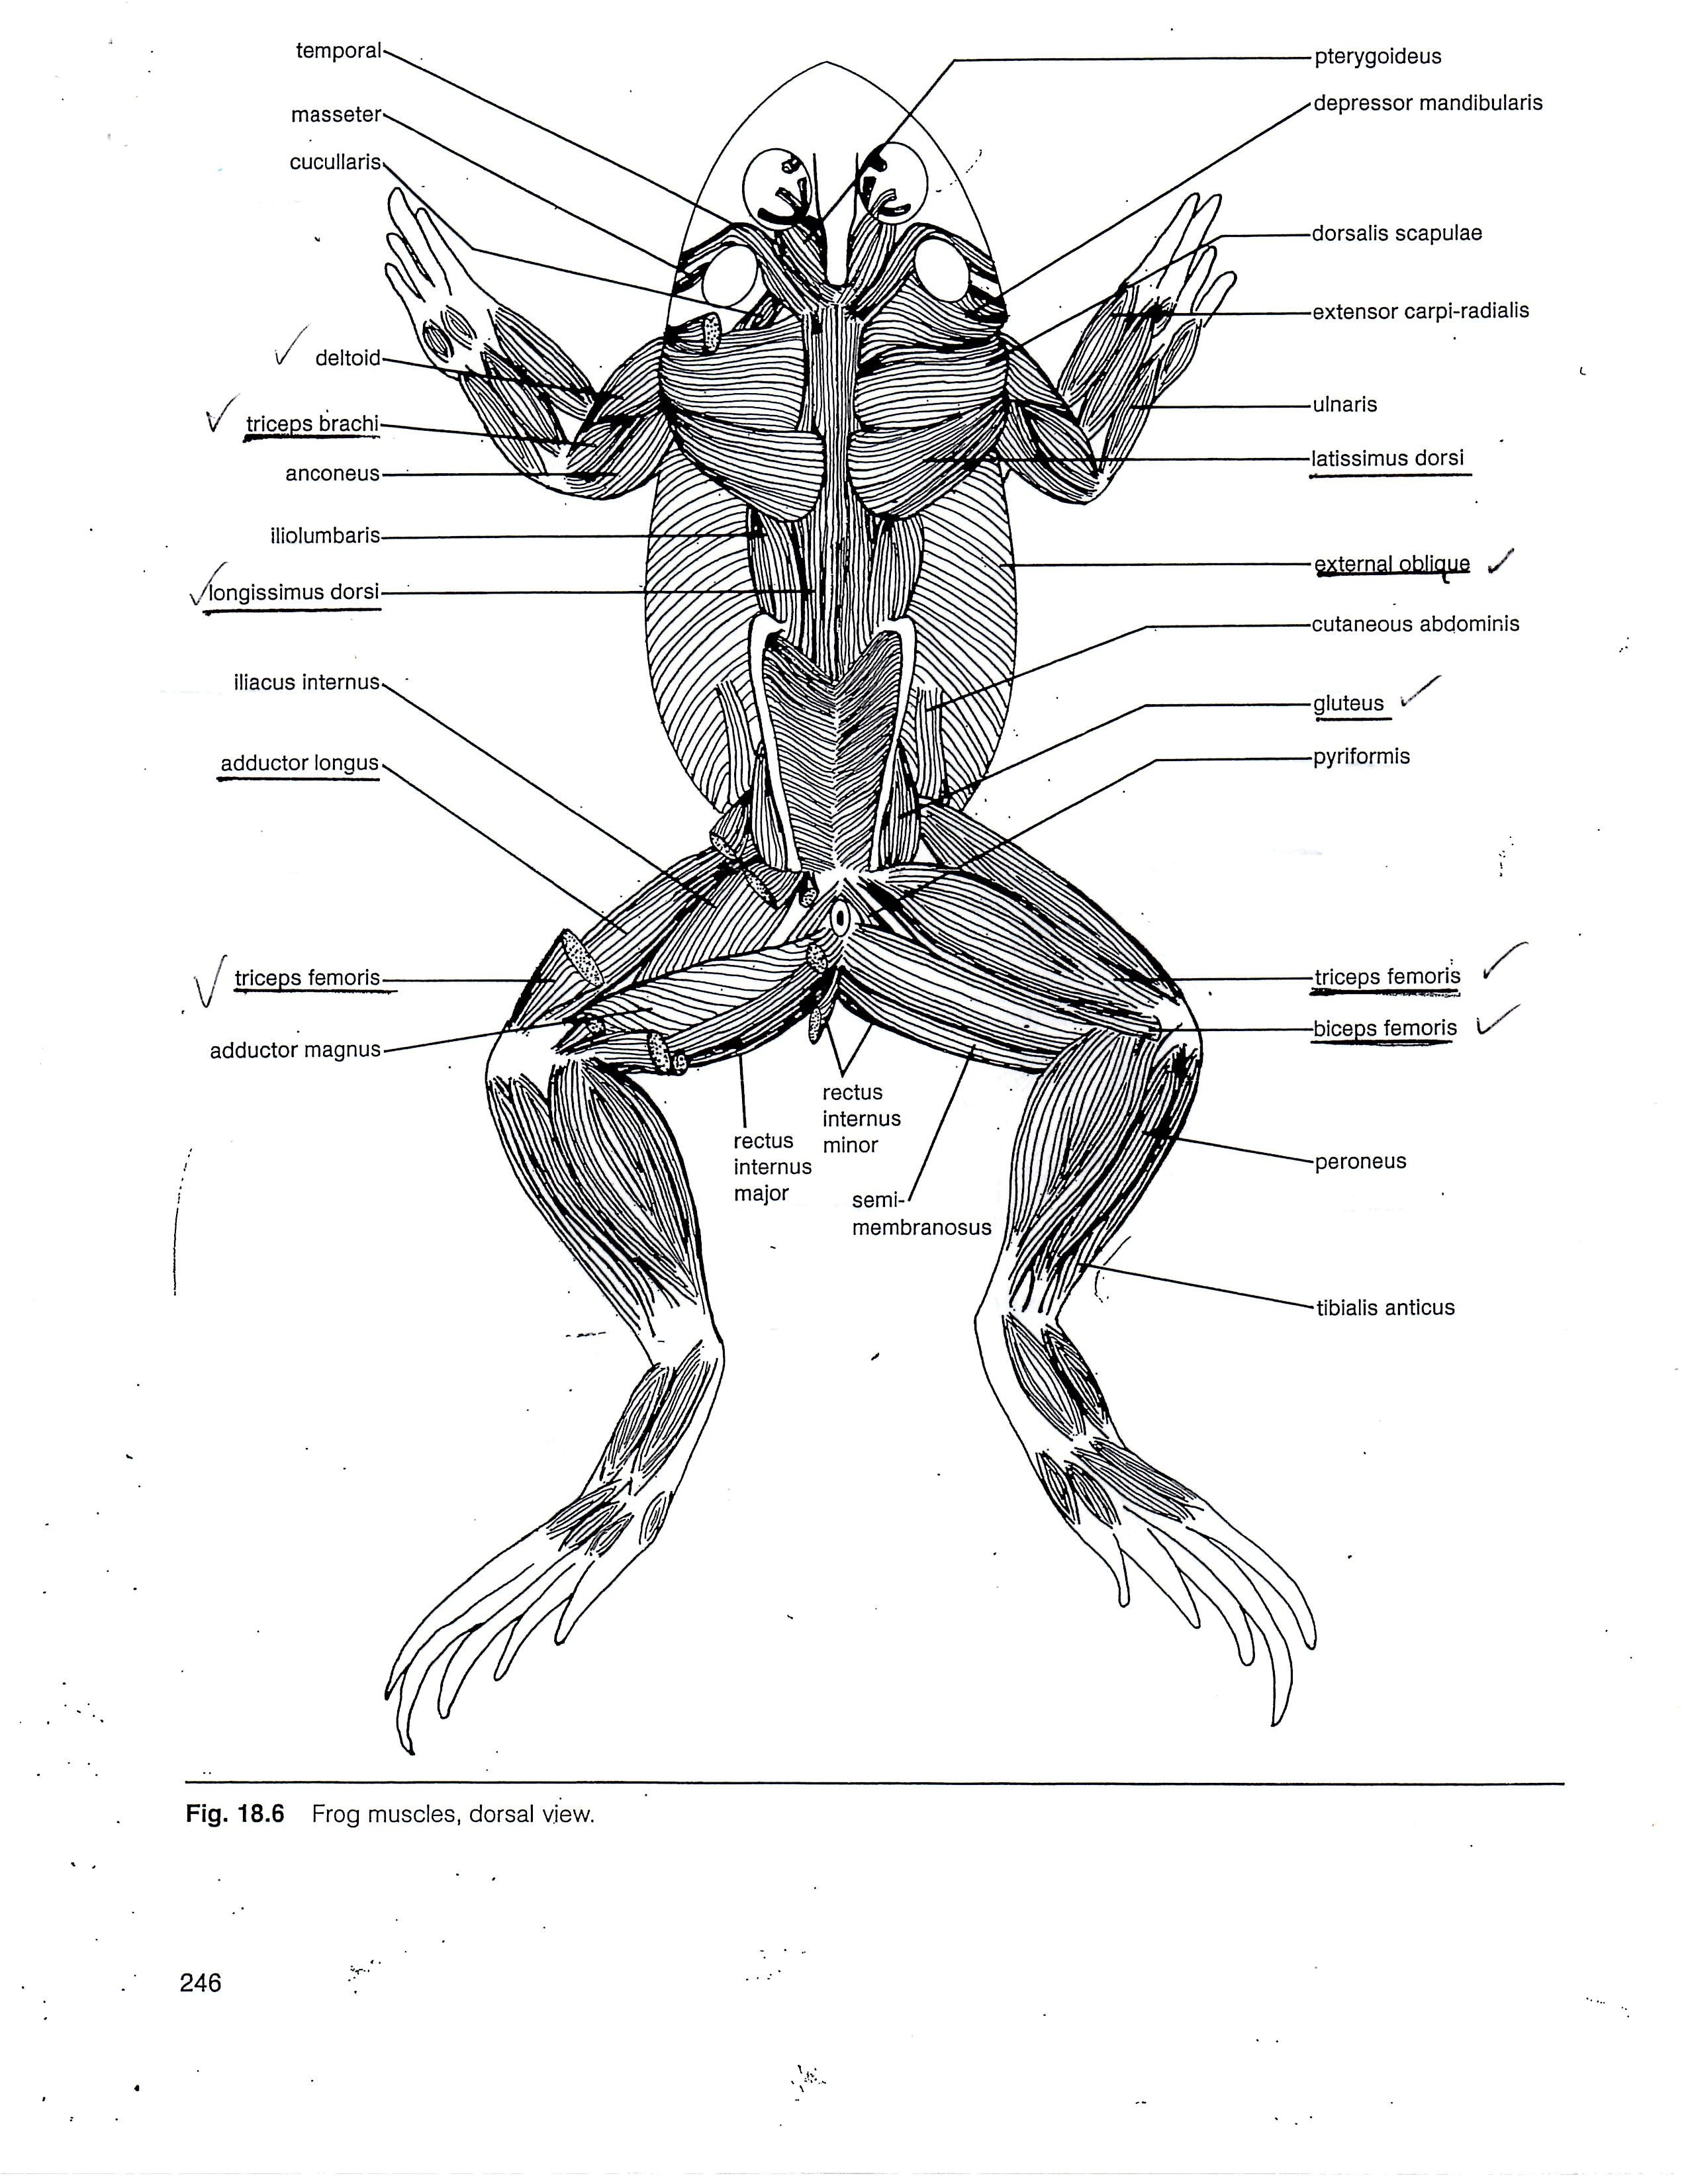 hight resolution of frog muscle anatomy muscular system of the frog human anatomy diagram